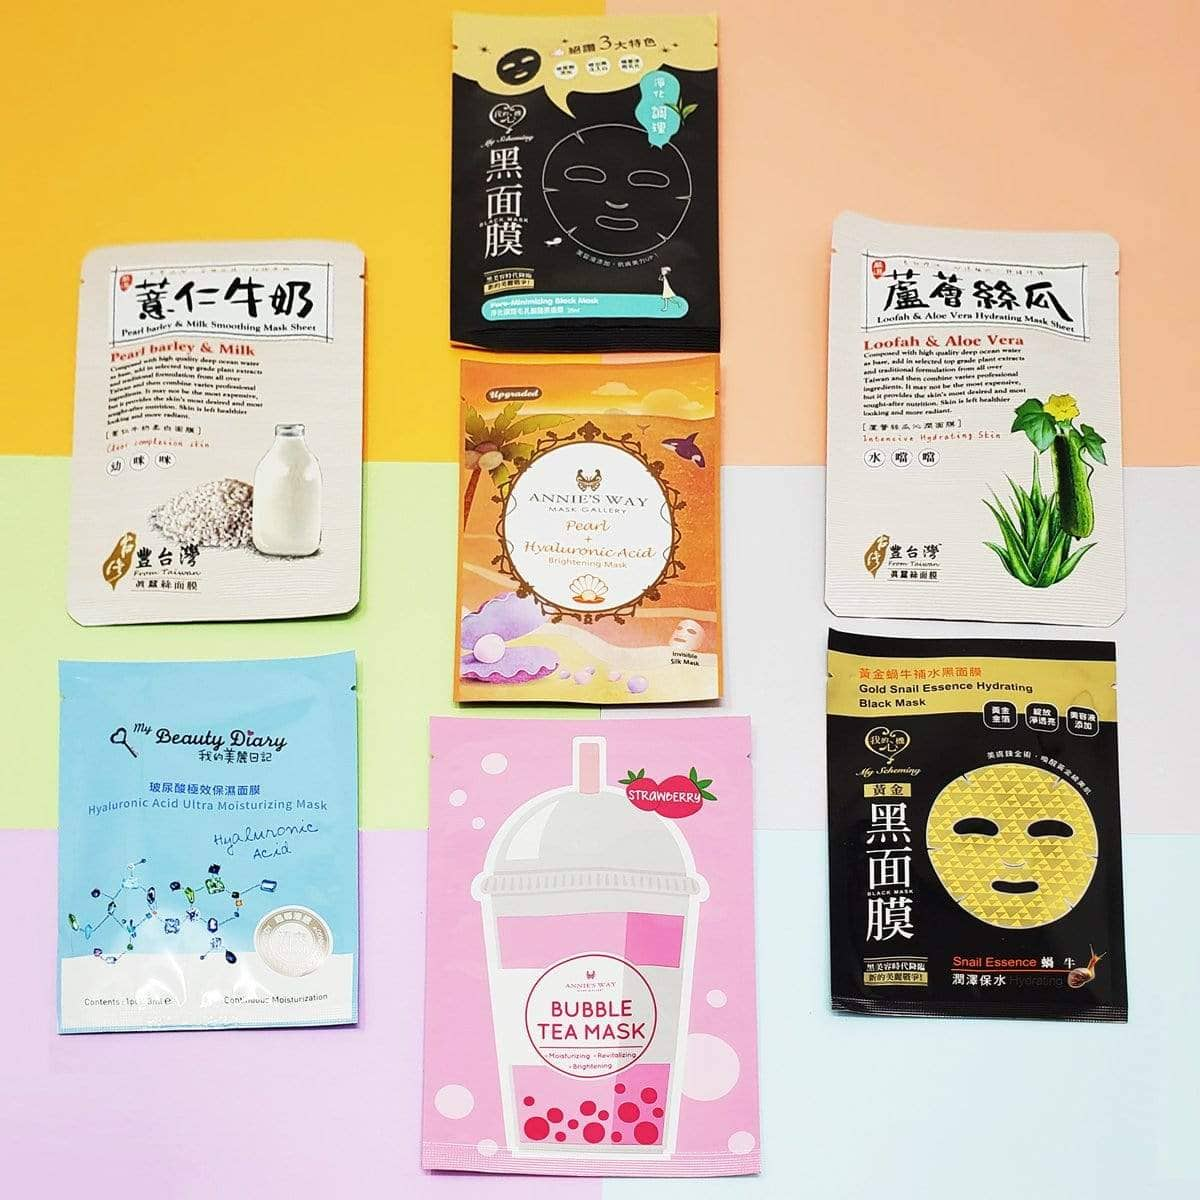 ✨ Glowie Co Taiwanese Sheet Mask Starter Set ✨ ($20 value)